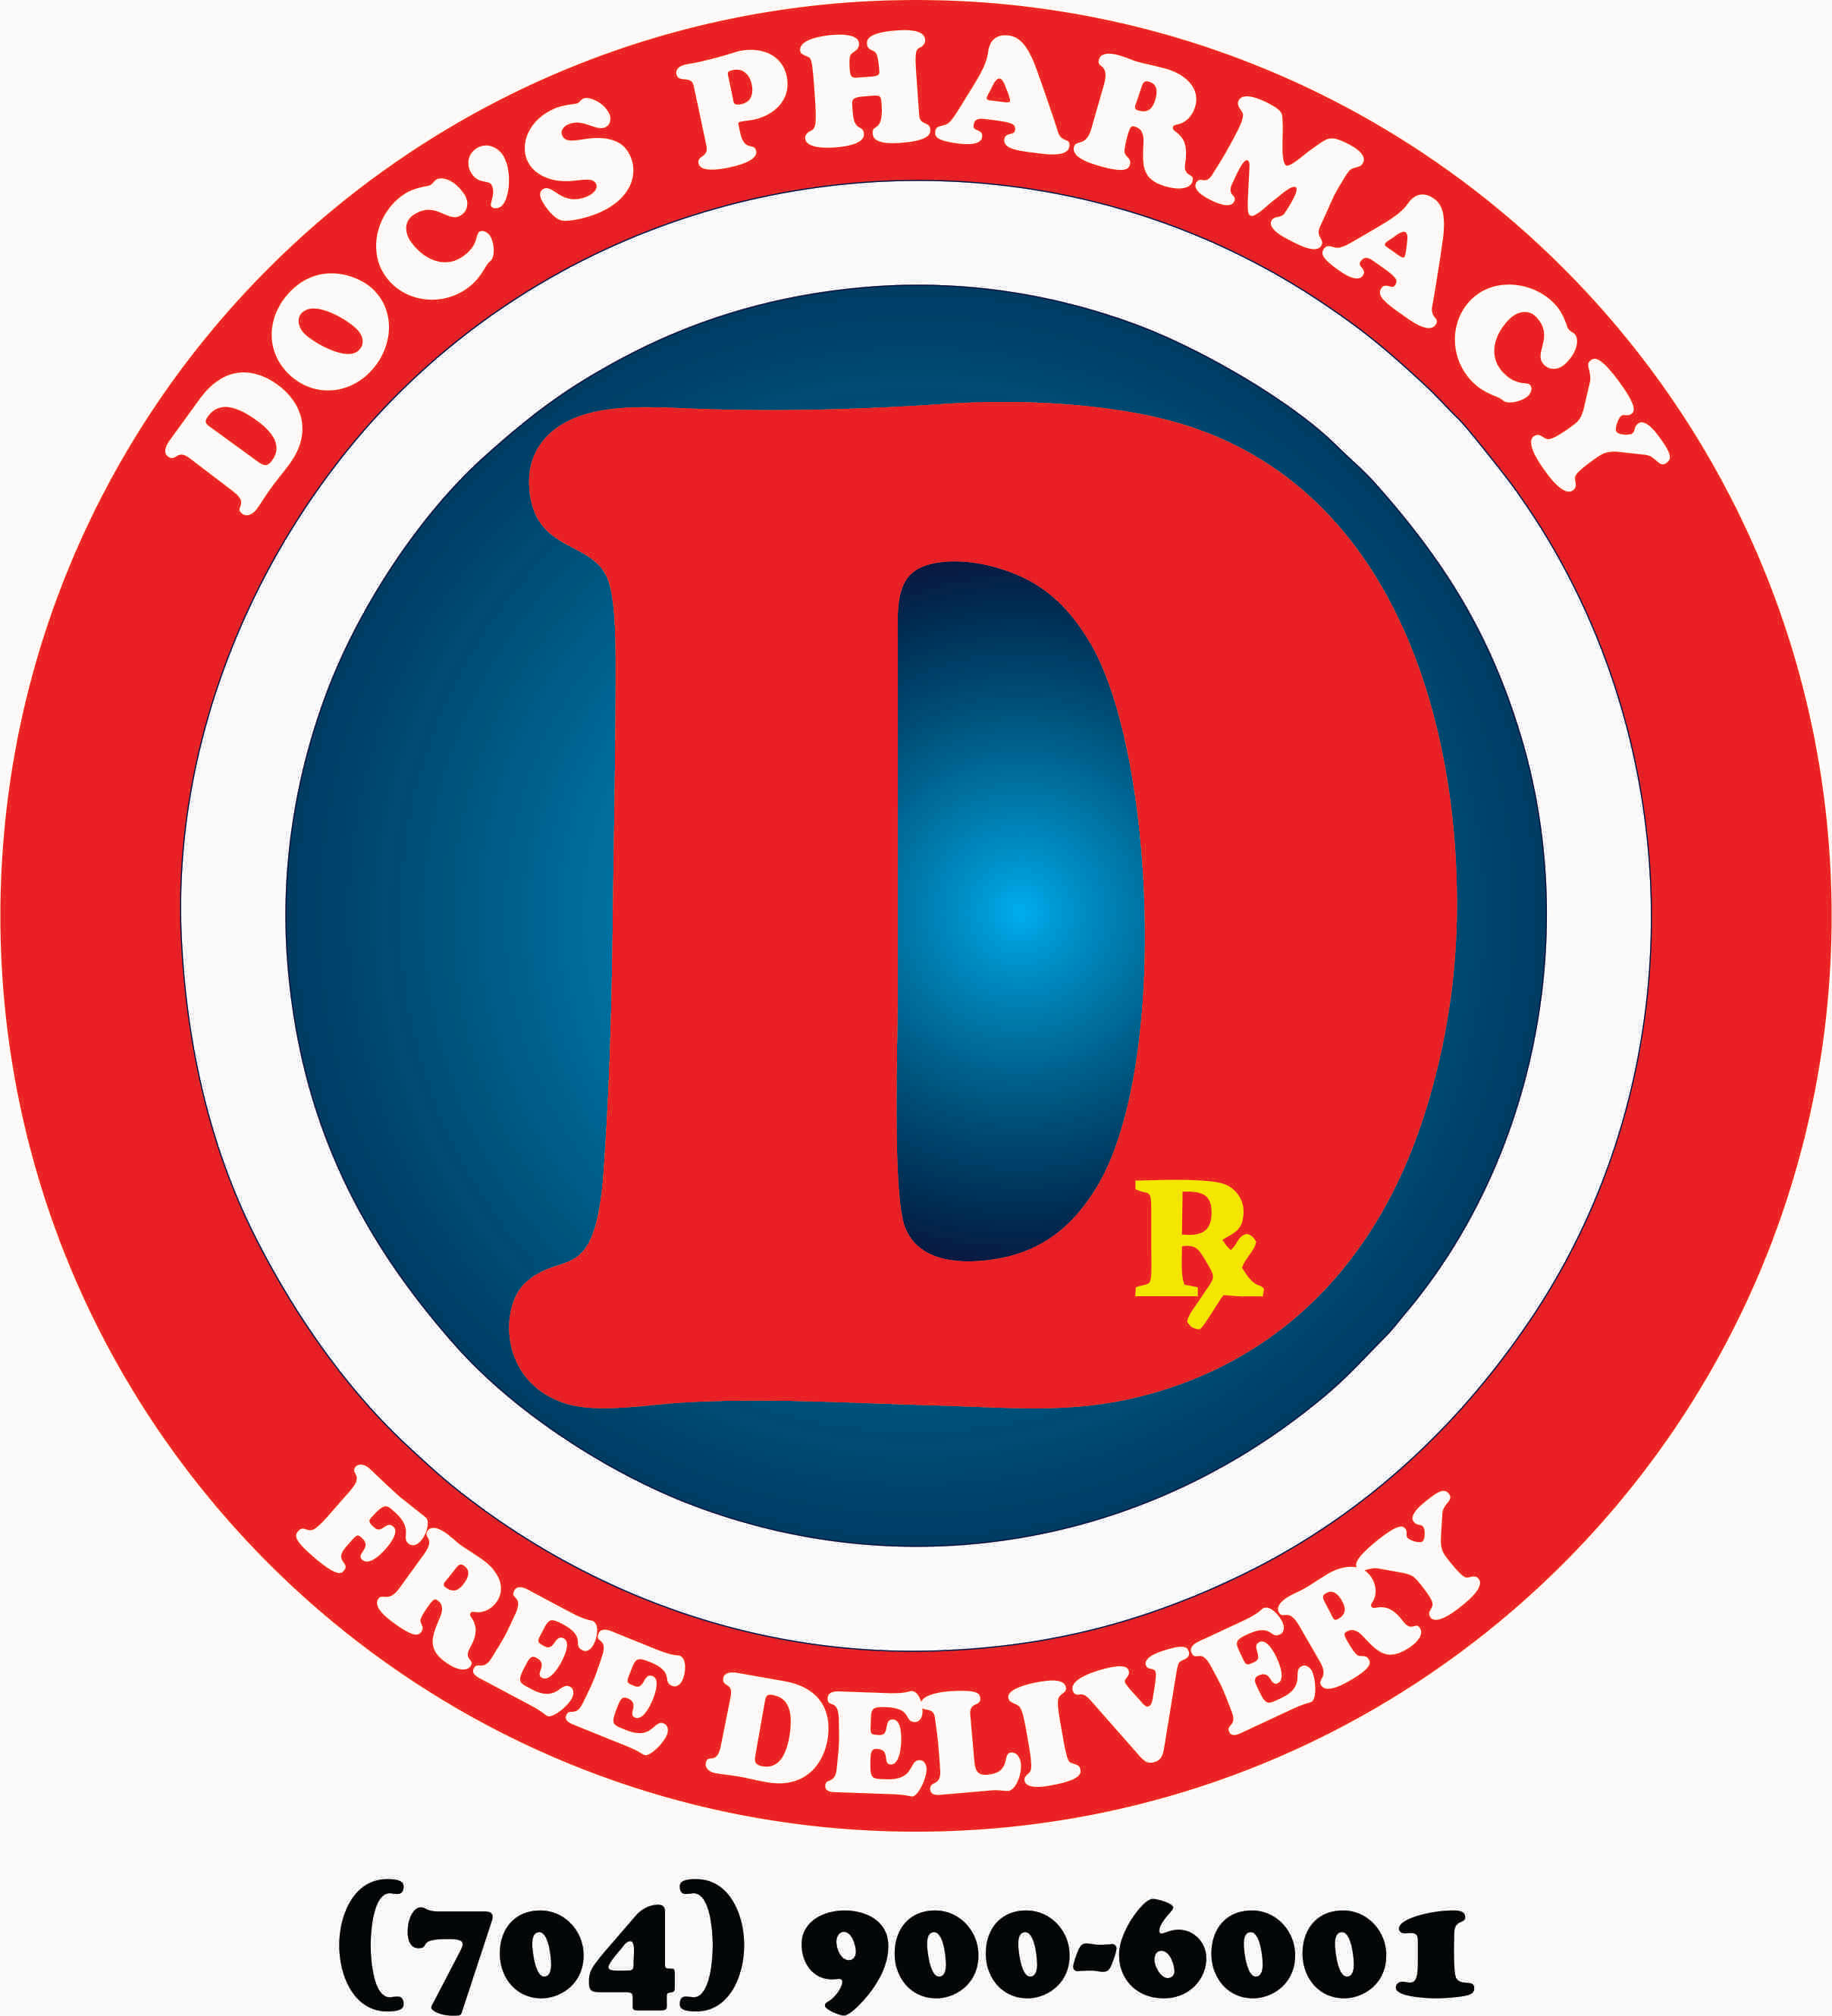 Image 1 | Docs pharmacy Inc